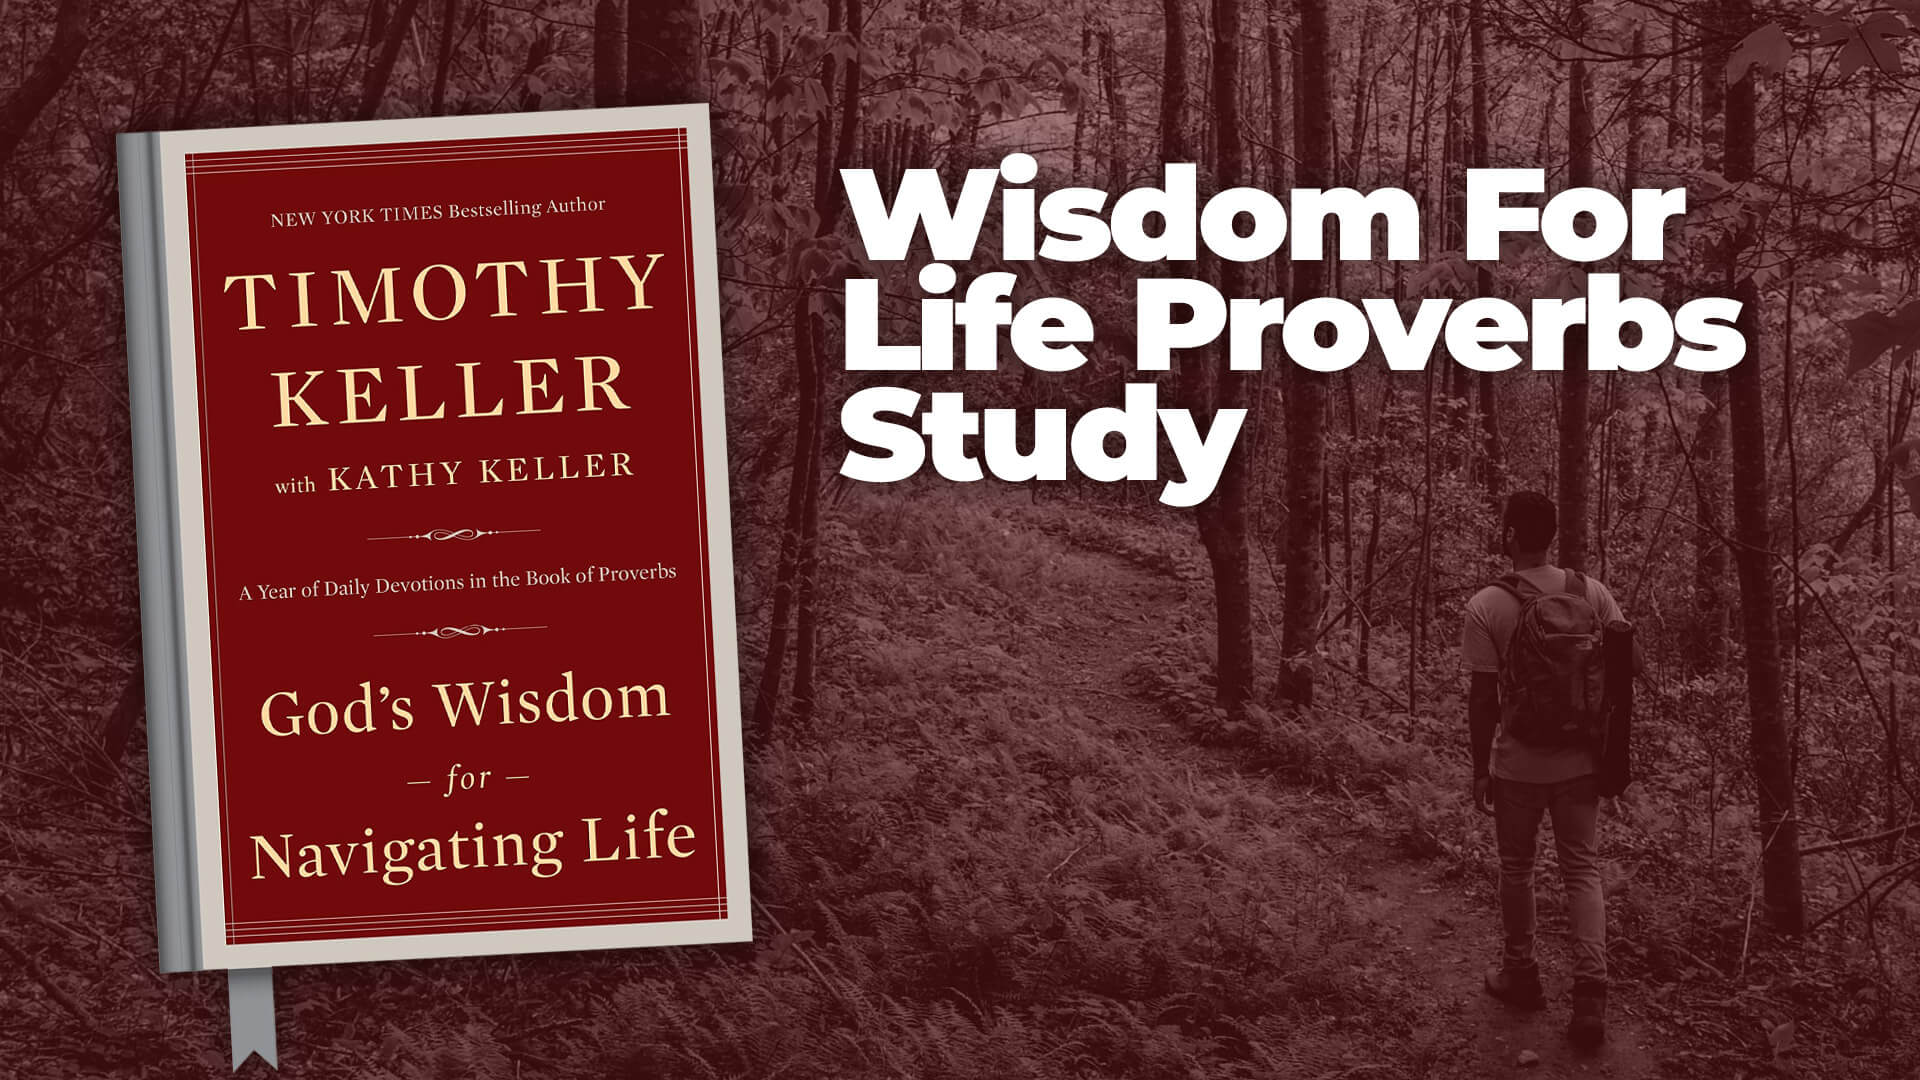 Wisdom for Life Proverbs Study